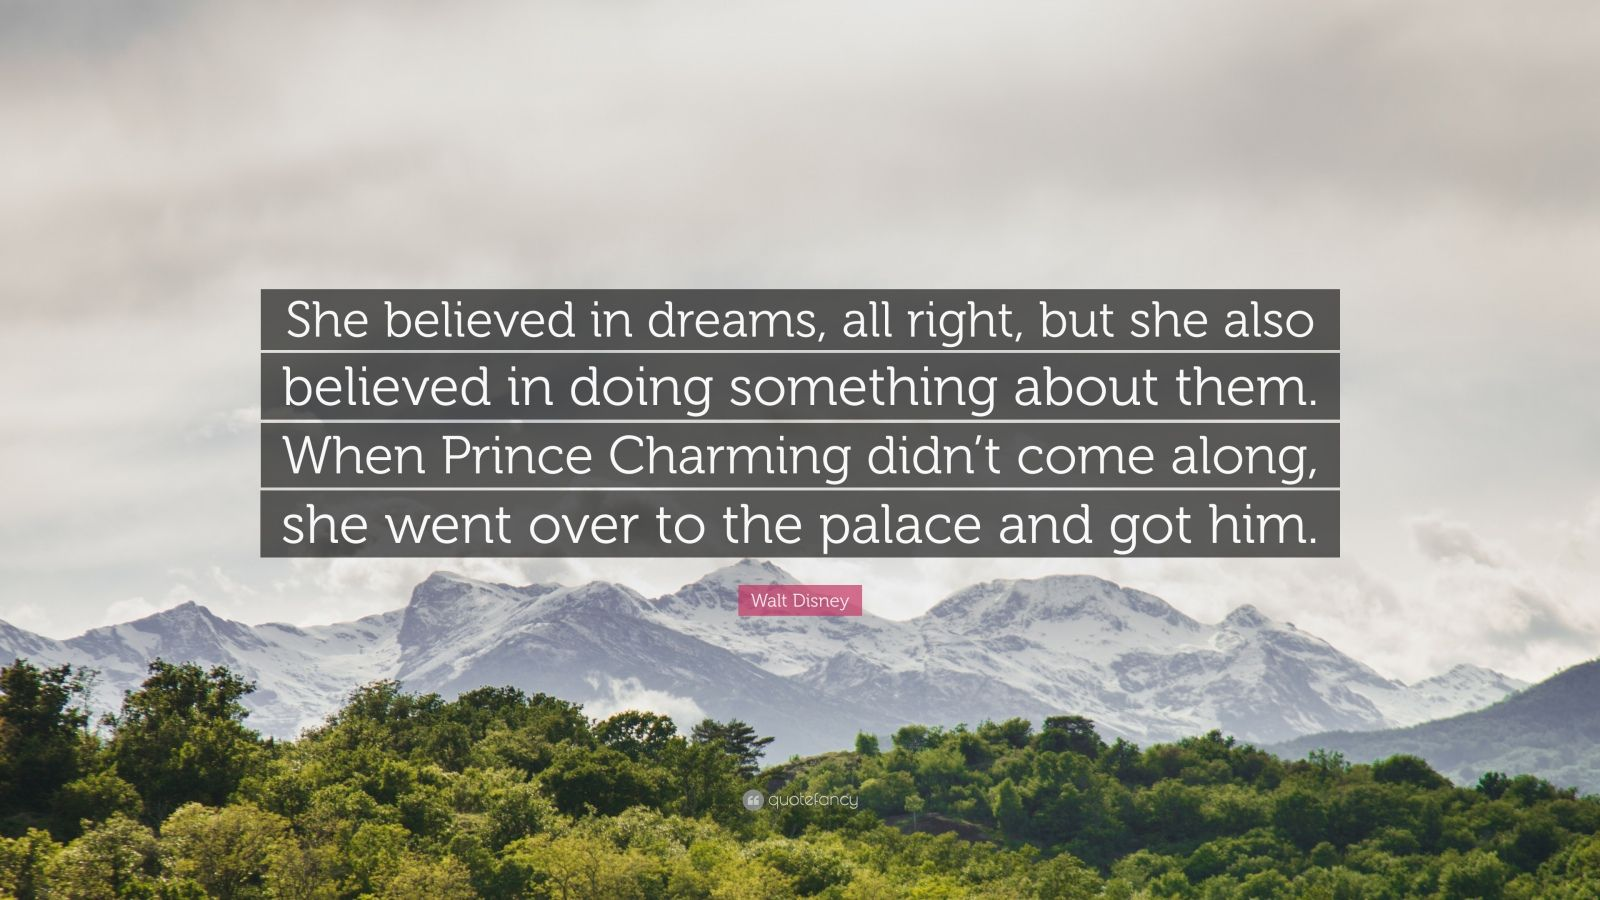 """Walt Disney Quote: """"She believed in dreams, all right, but she also believed in doing something about them. When Prince Charming didn't come along, she went over to the palace and got him."""""""